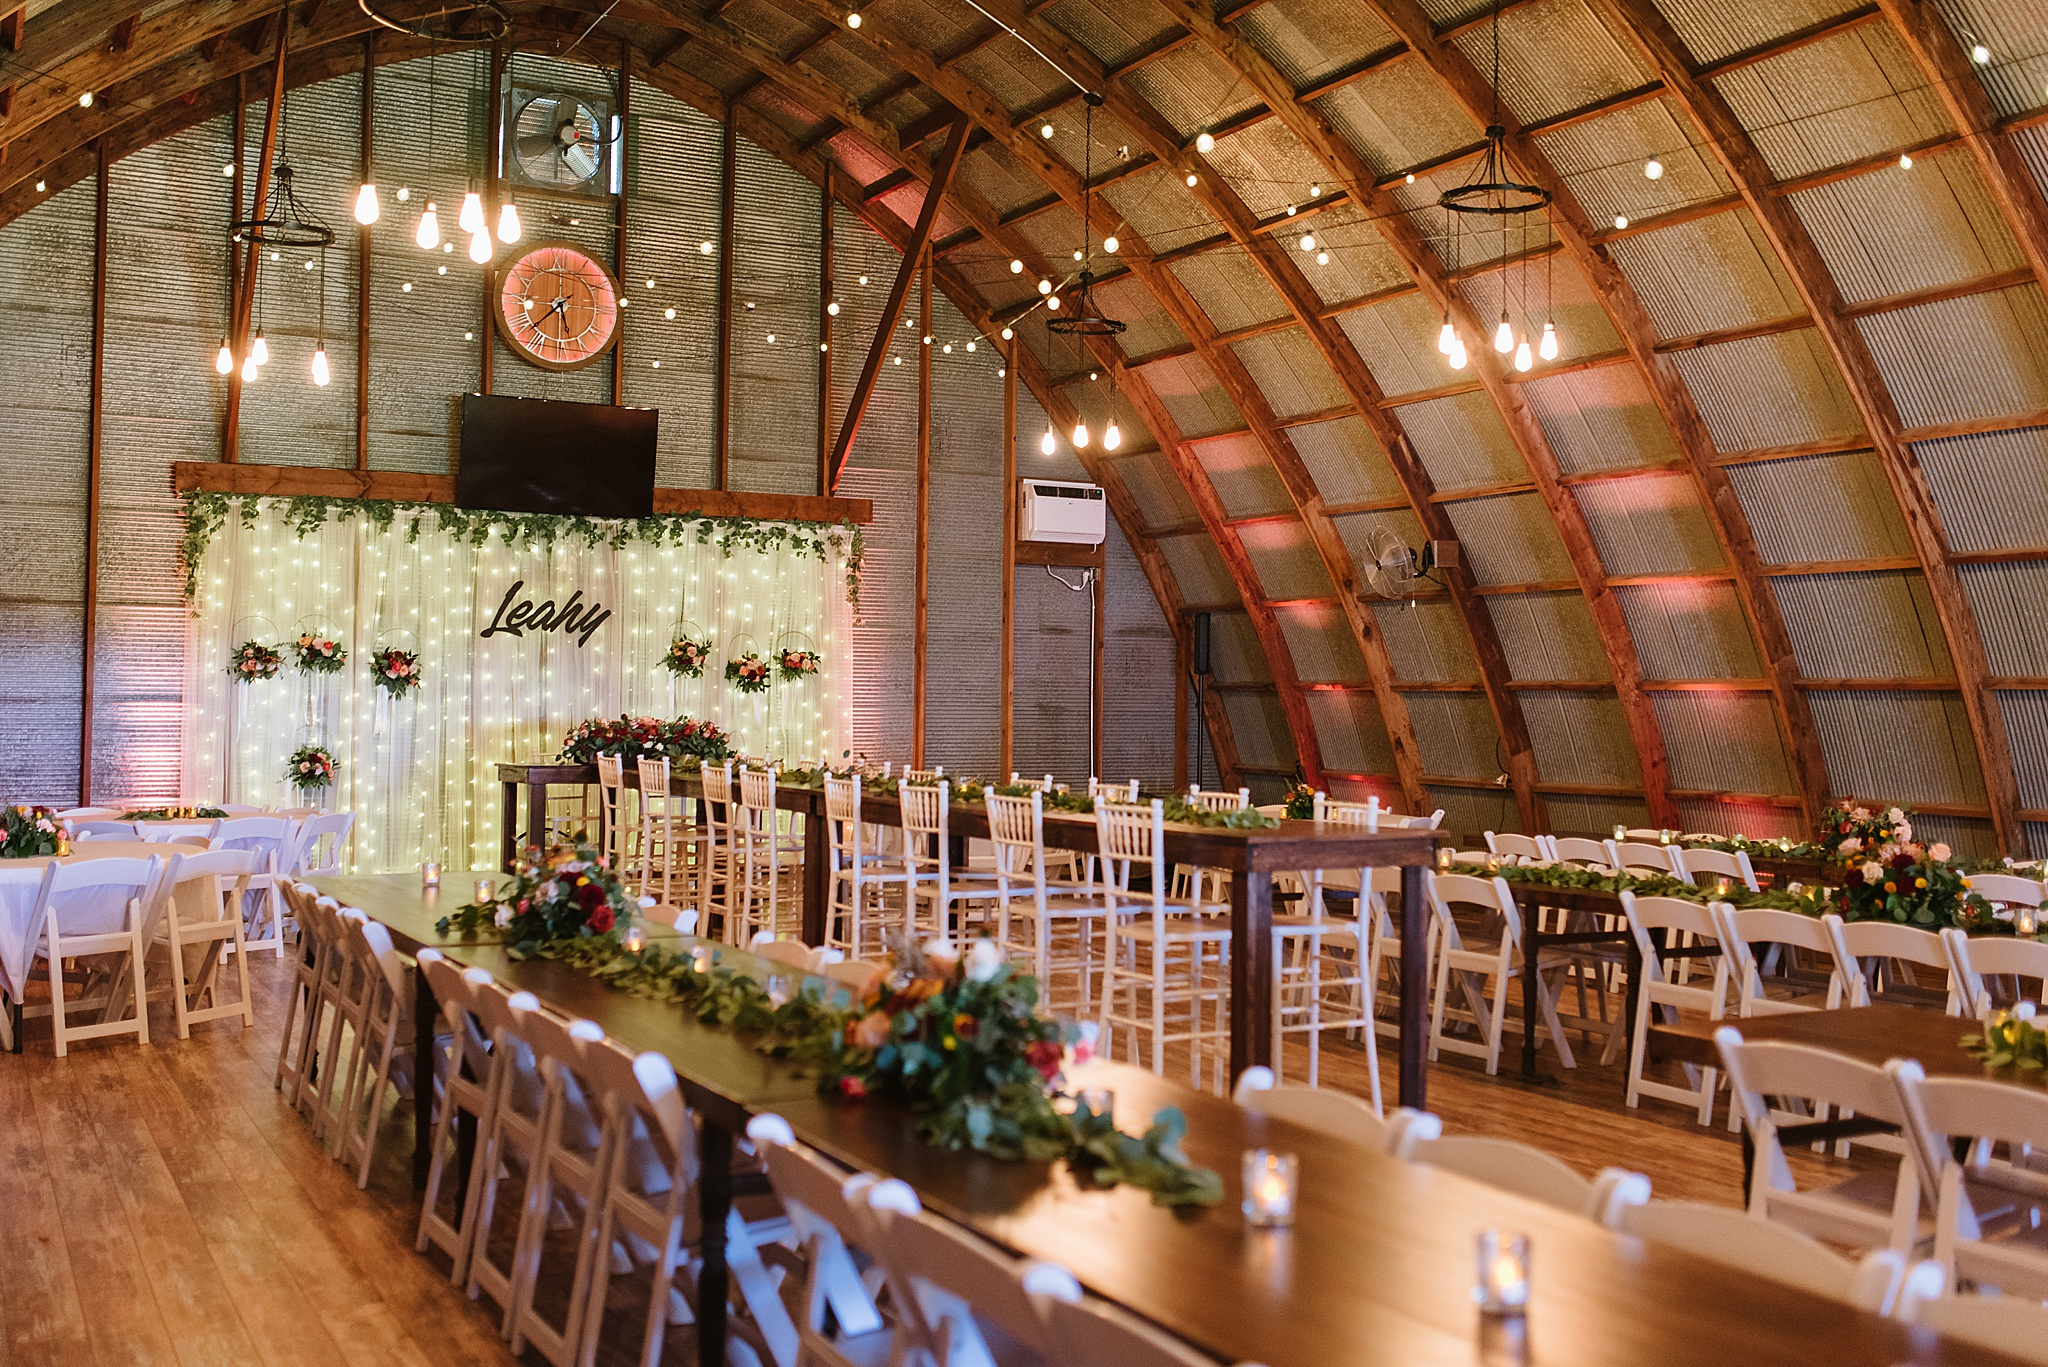 north star farm event center wedding